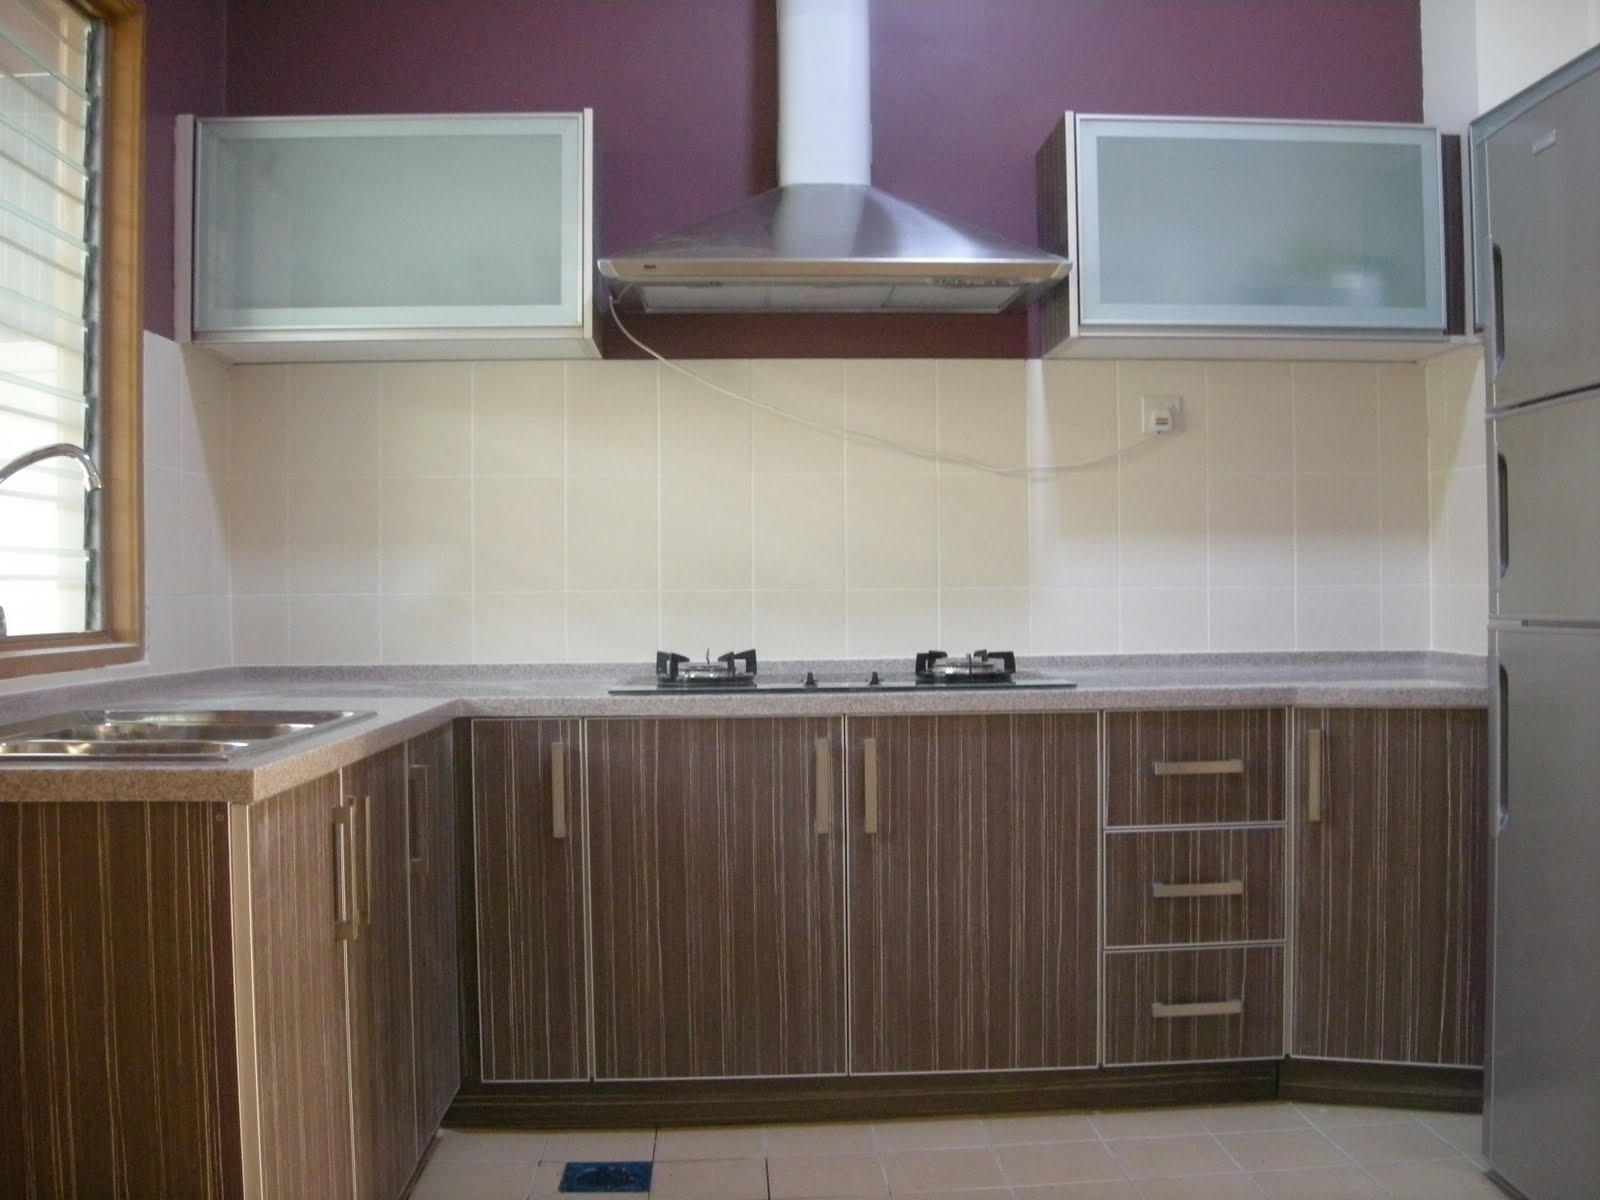 Kitchen Cabinet Materials Thermofoil Cabinets Material